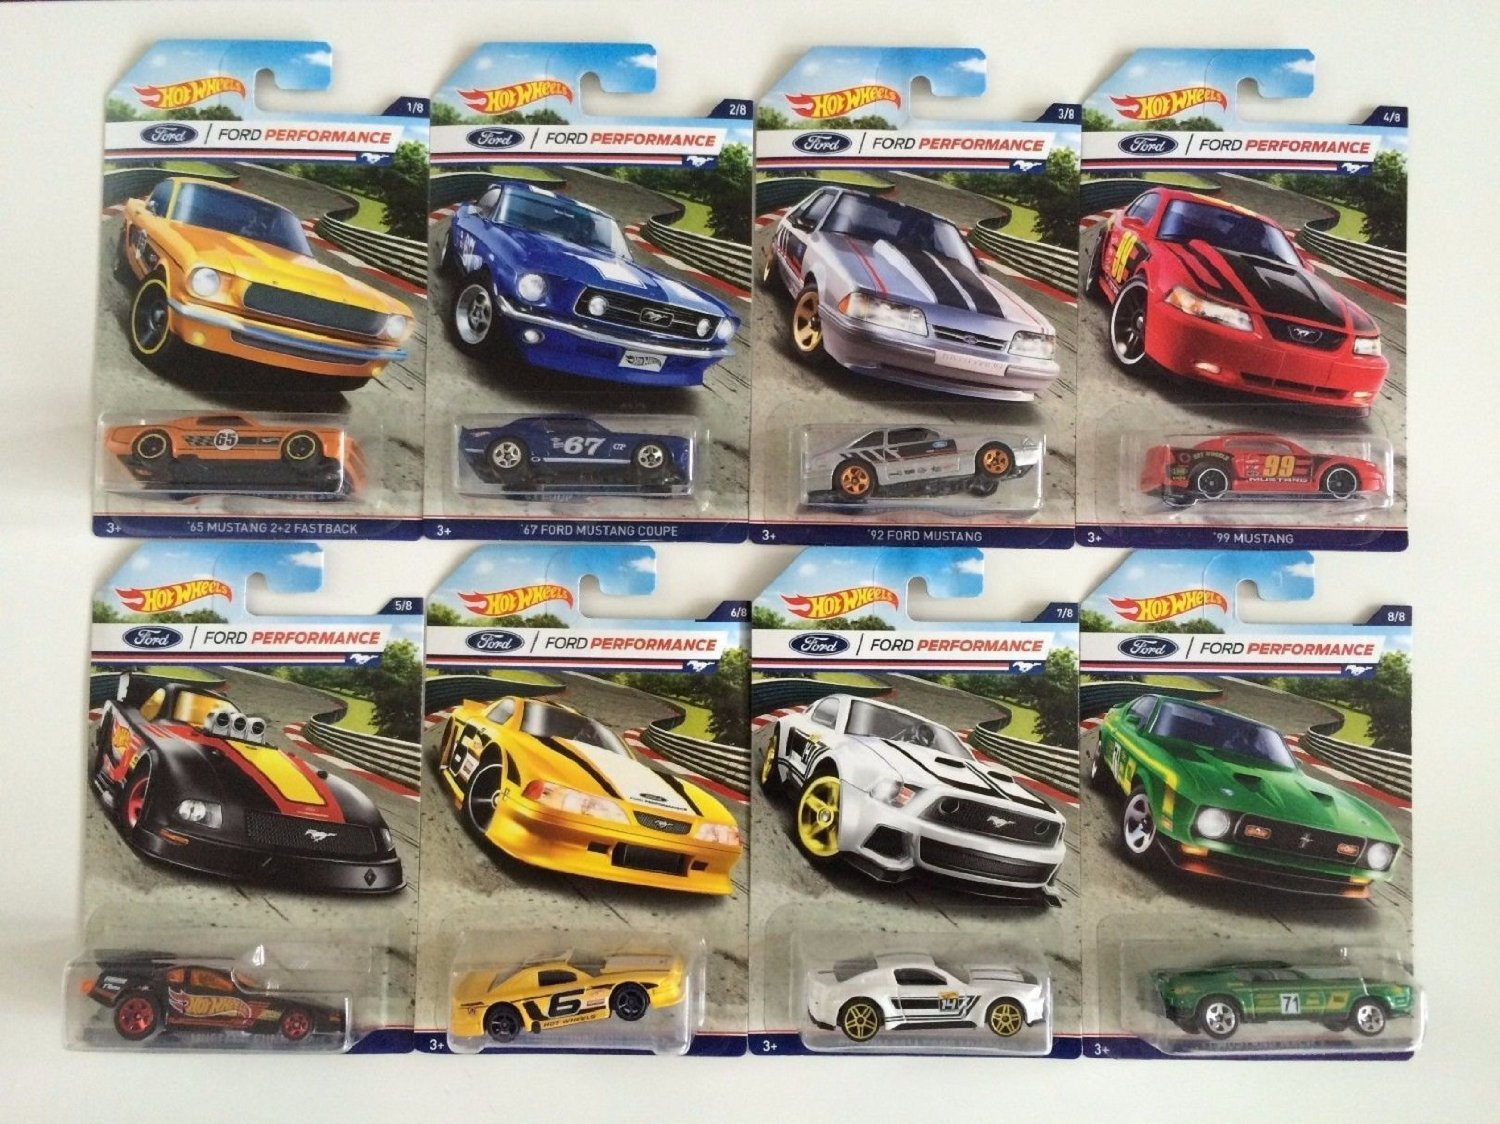 2016 Hot Wheels FORD PERFORMANCE Series of 8 Mustang Cars Walmart Exclusive